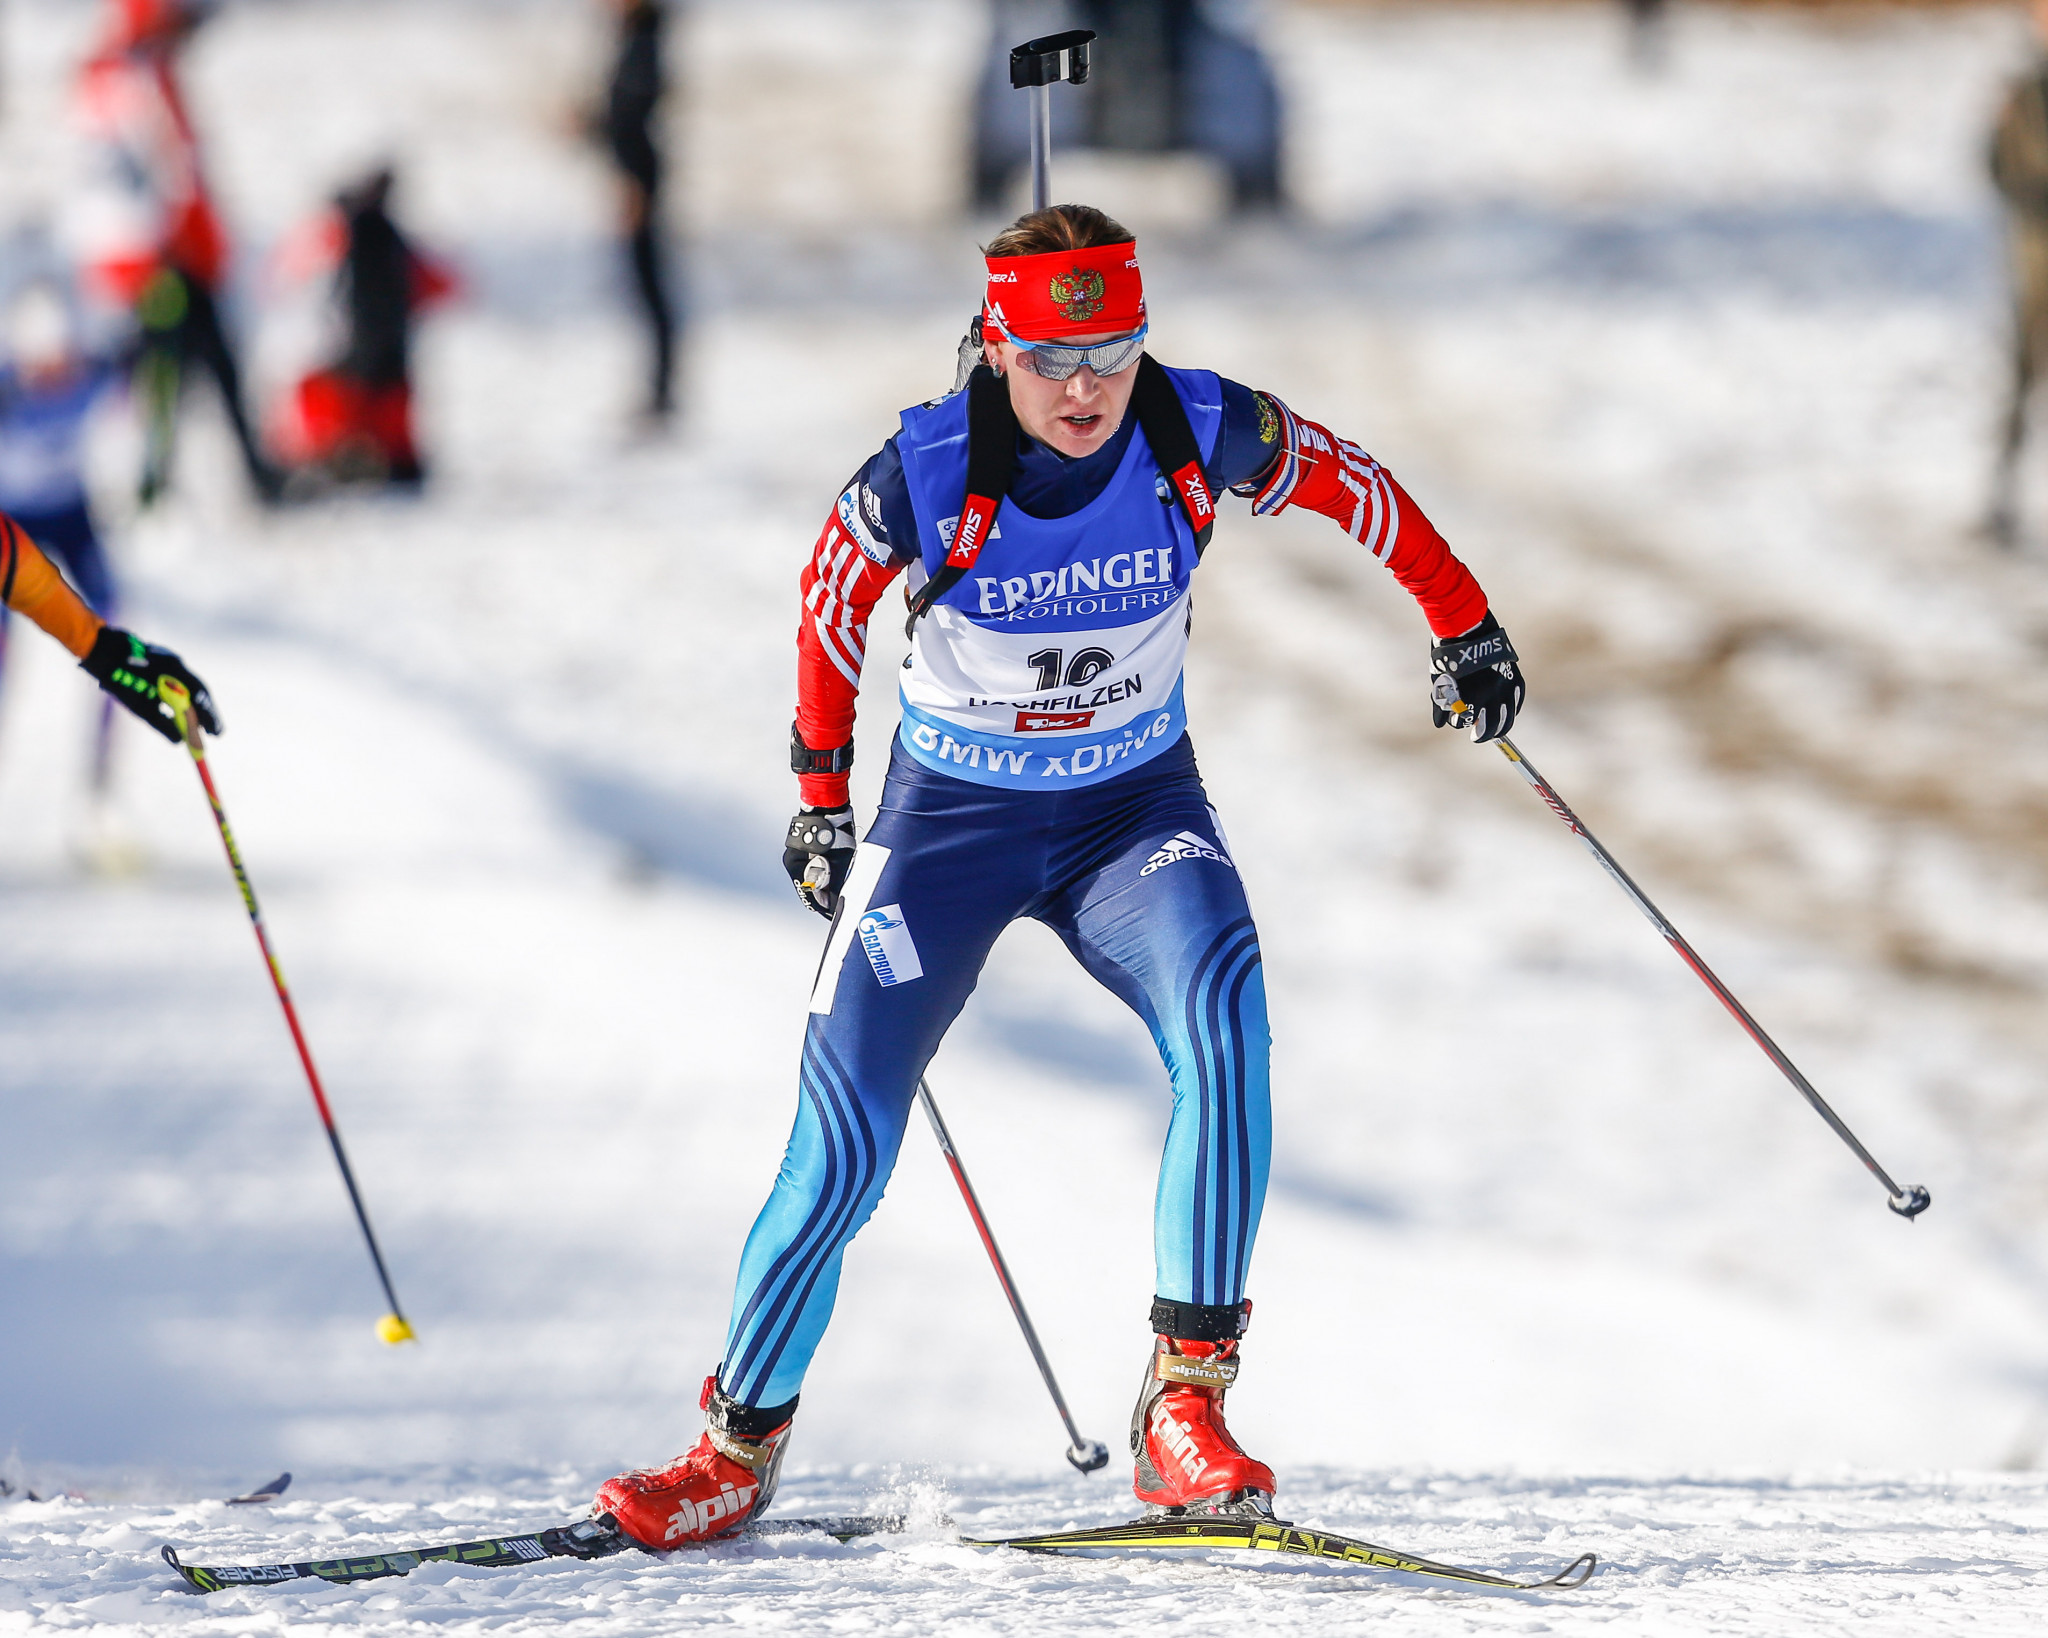 Ekaterina Glazyrina is among the Russian biathletes to be sanctioned so far ©Getty Images